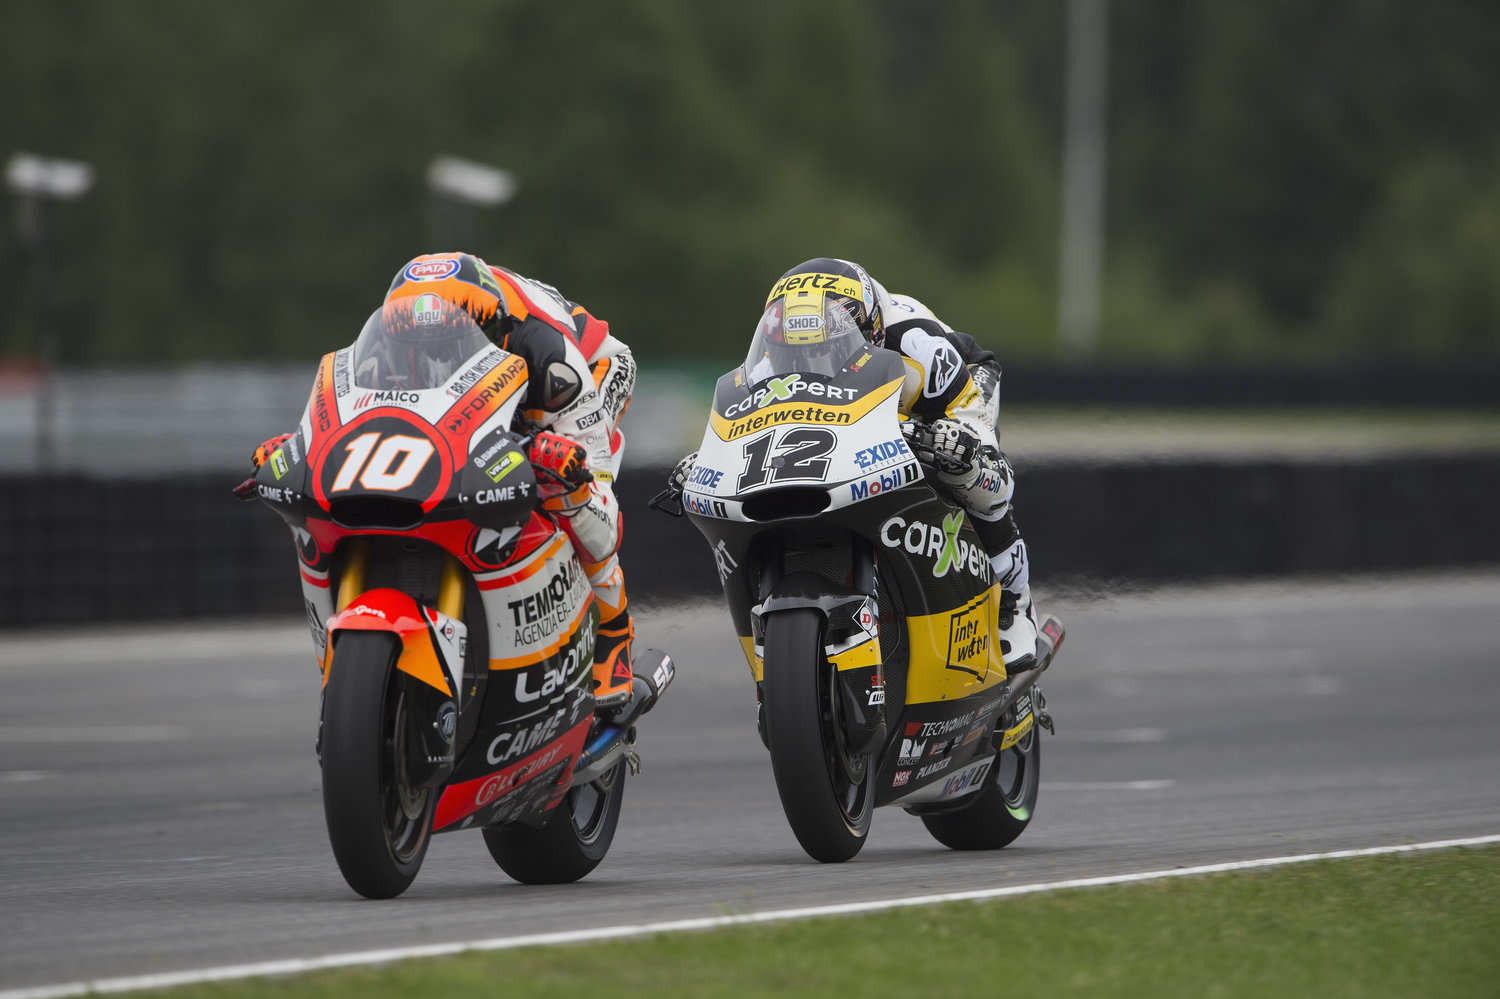 Marini storms to furious fourth in Brno to celebrate best career result